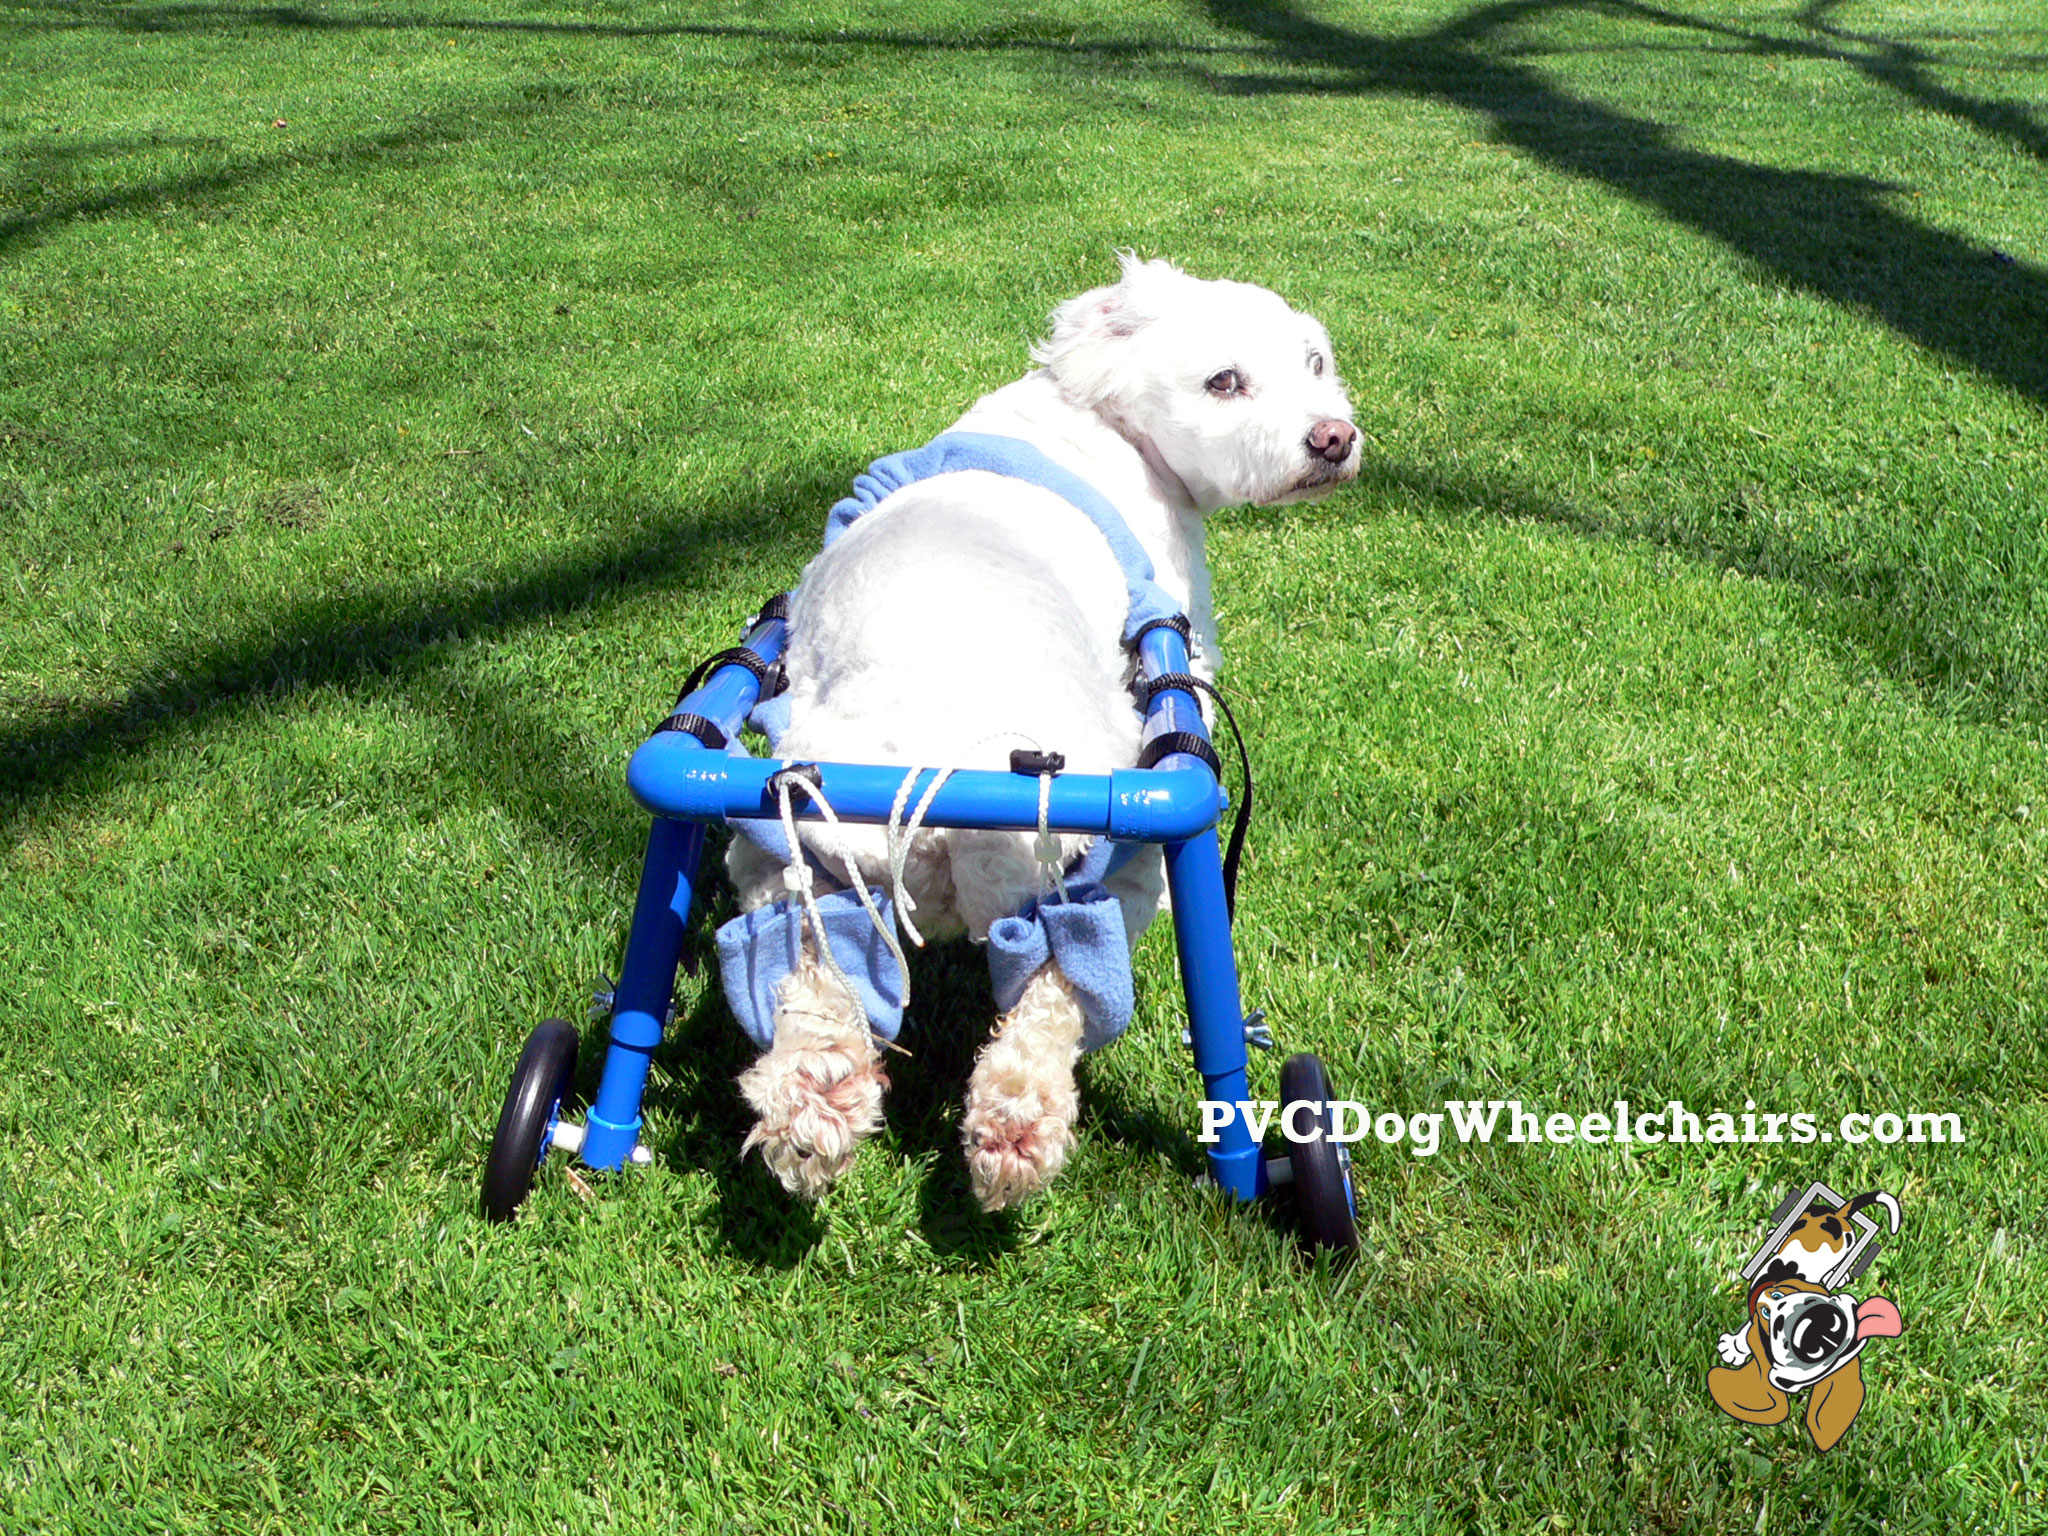 Casey dog wheelchair 2